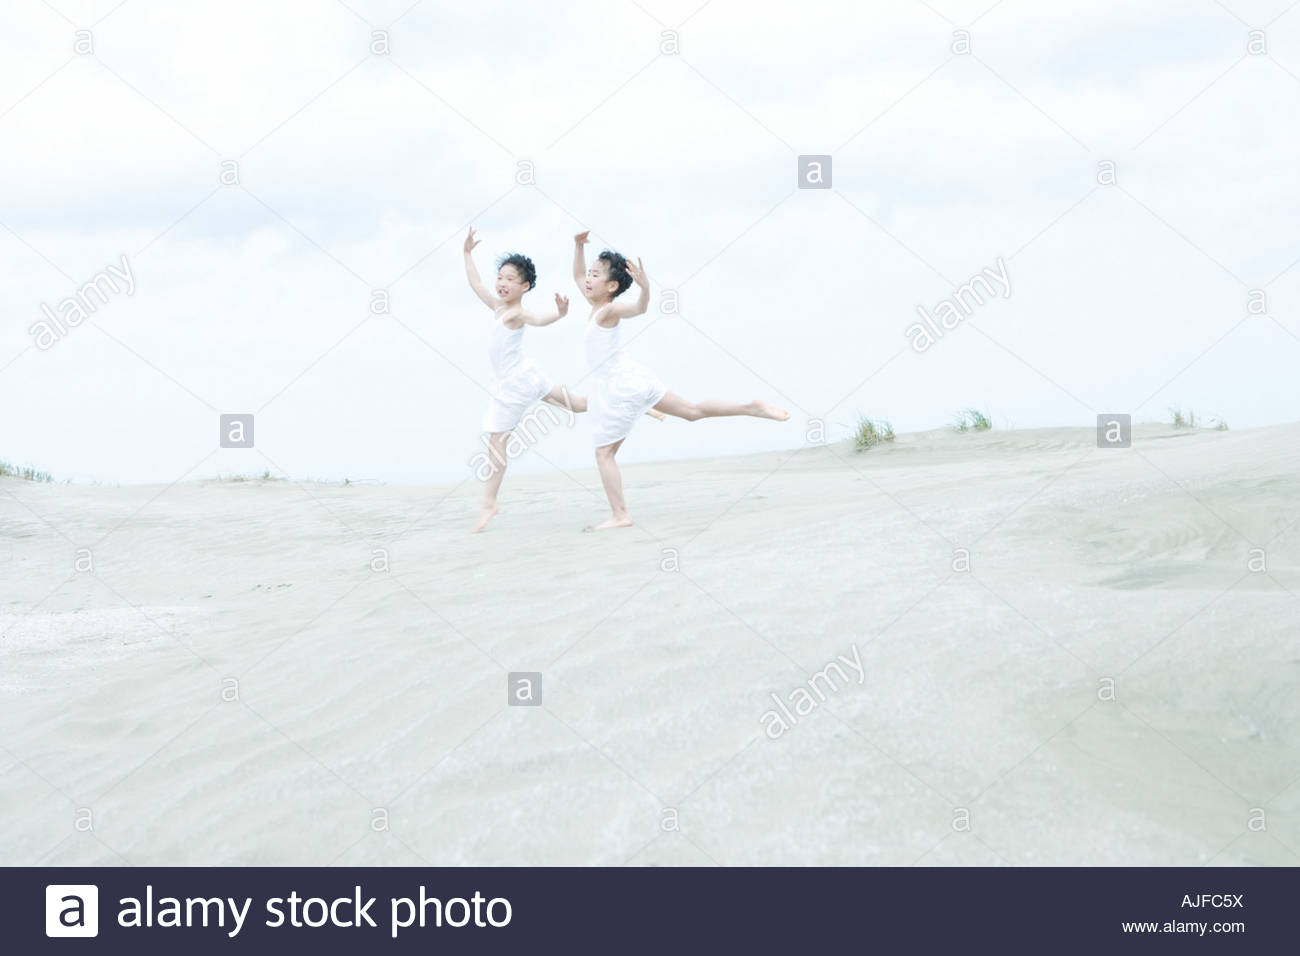 Girls dancing on beach - Stock Image